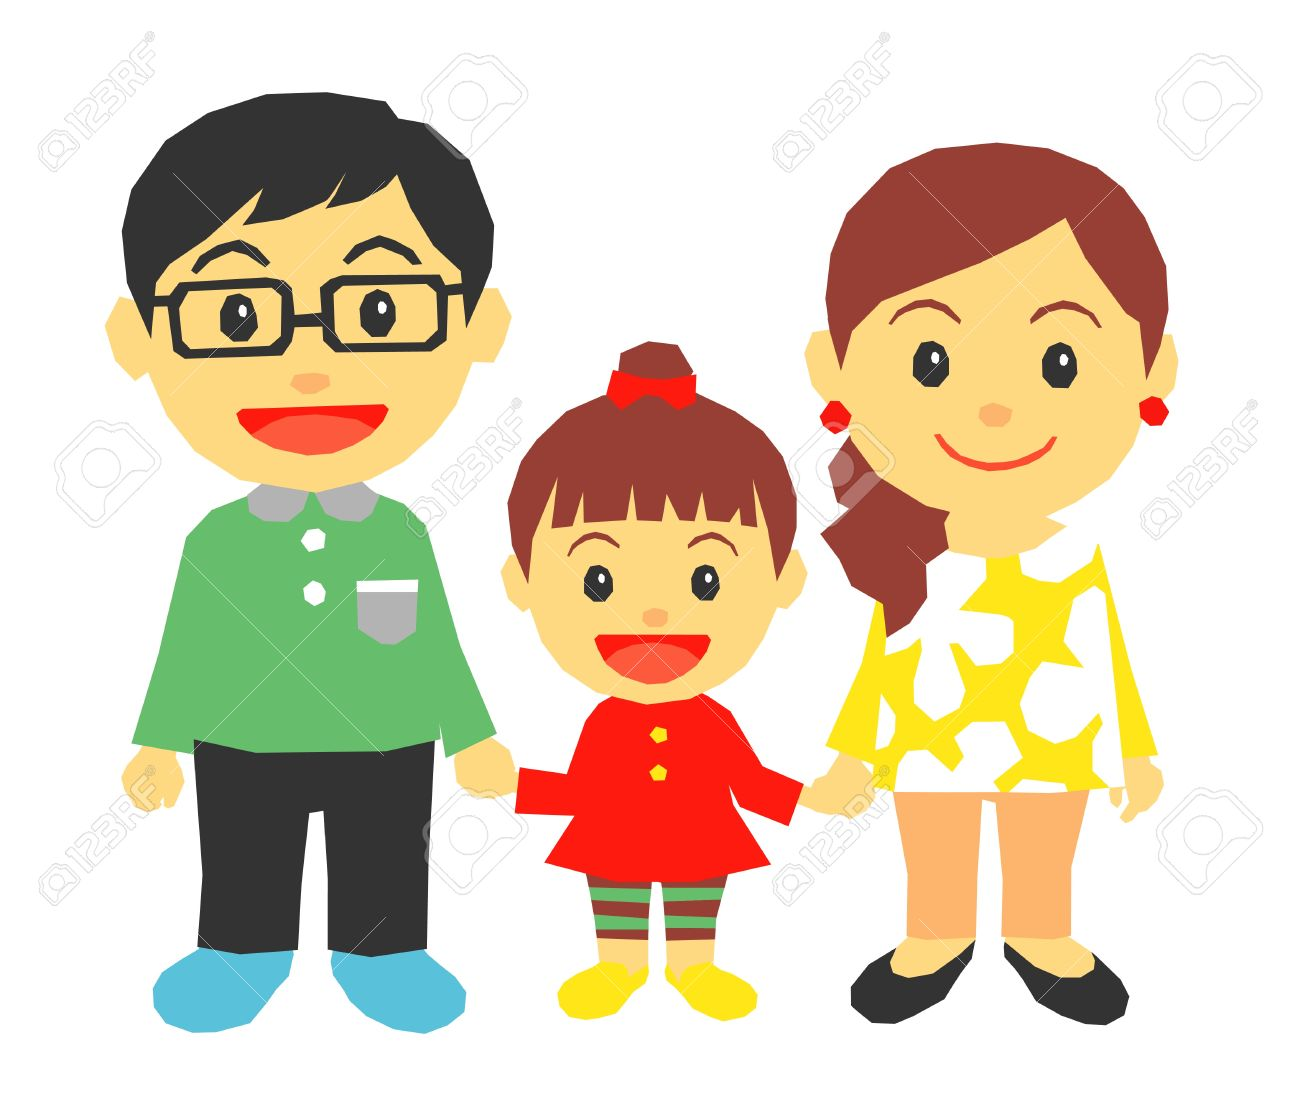 Girl with mom and dad clipart banner royalty free stock Mother And Father Clipart | Free download best Mother And Father ... banner royalty free stock